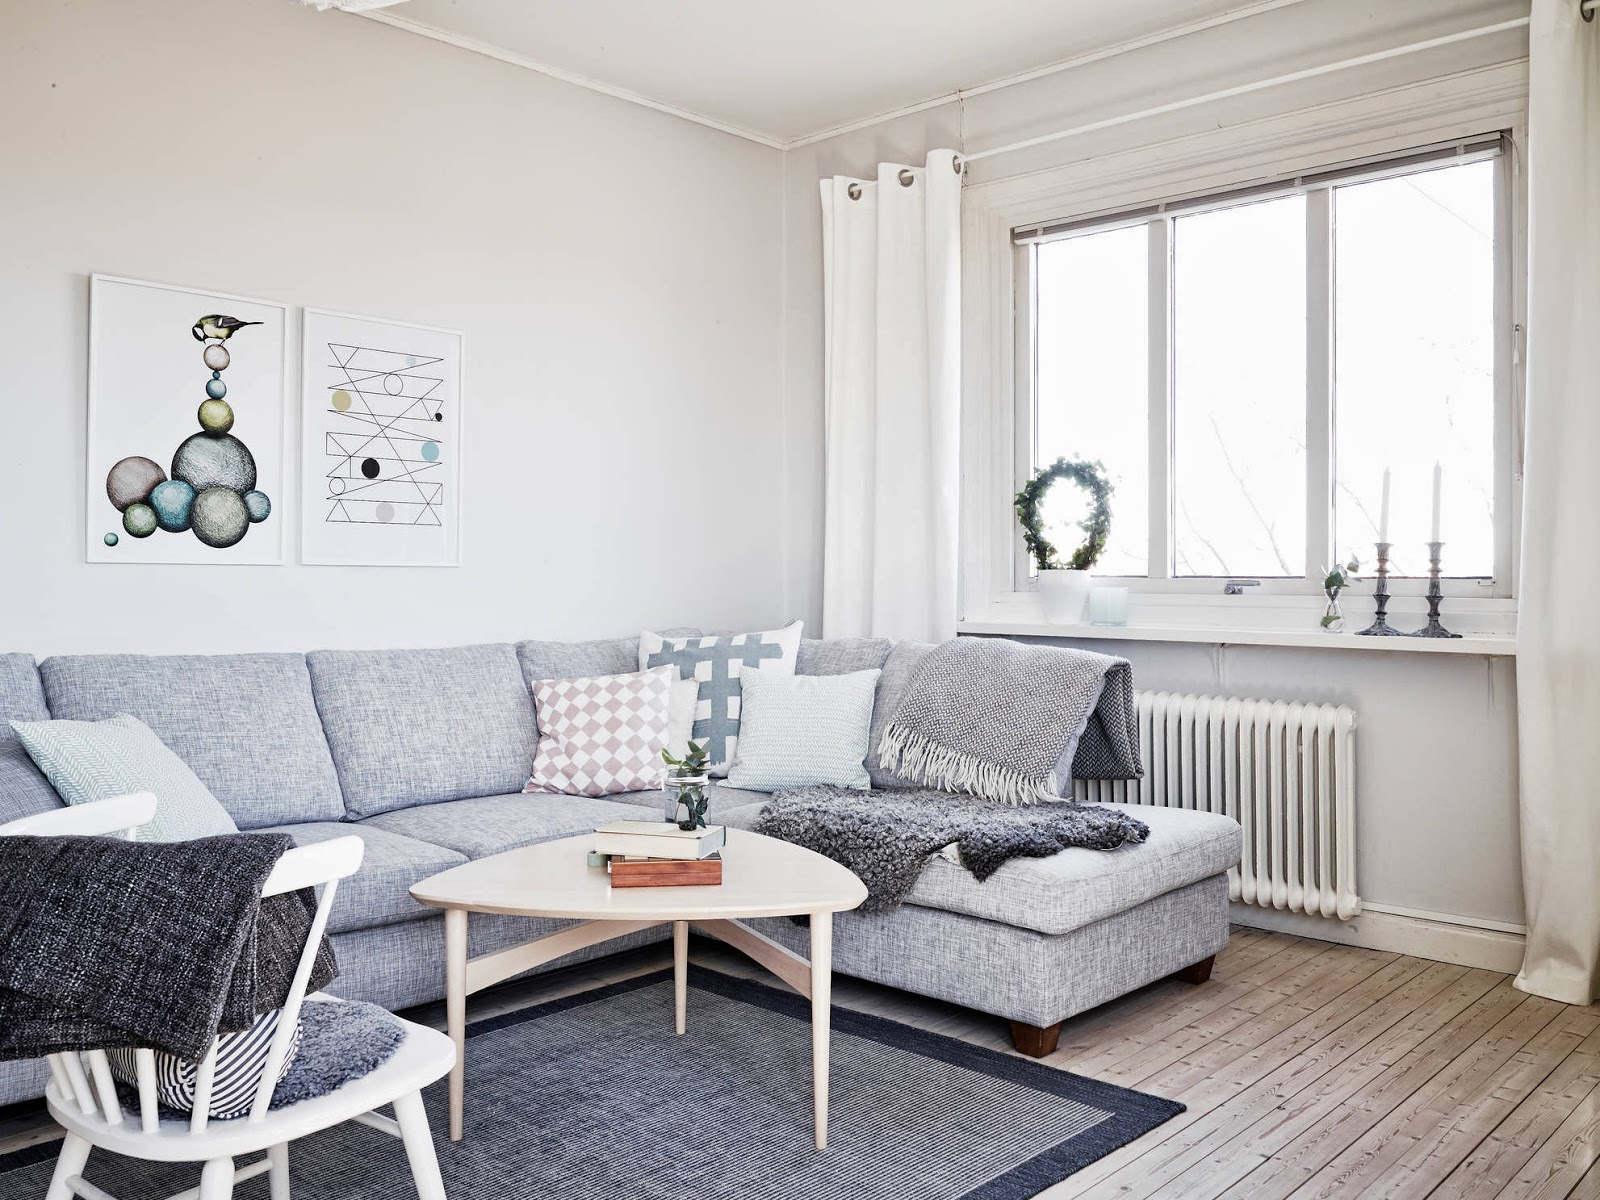 Diy Home Design Ideas Living Room Software A Light And Airy White And Grey Swedish Apartment